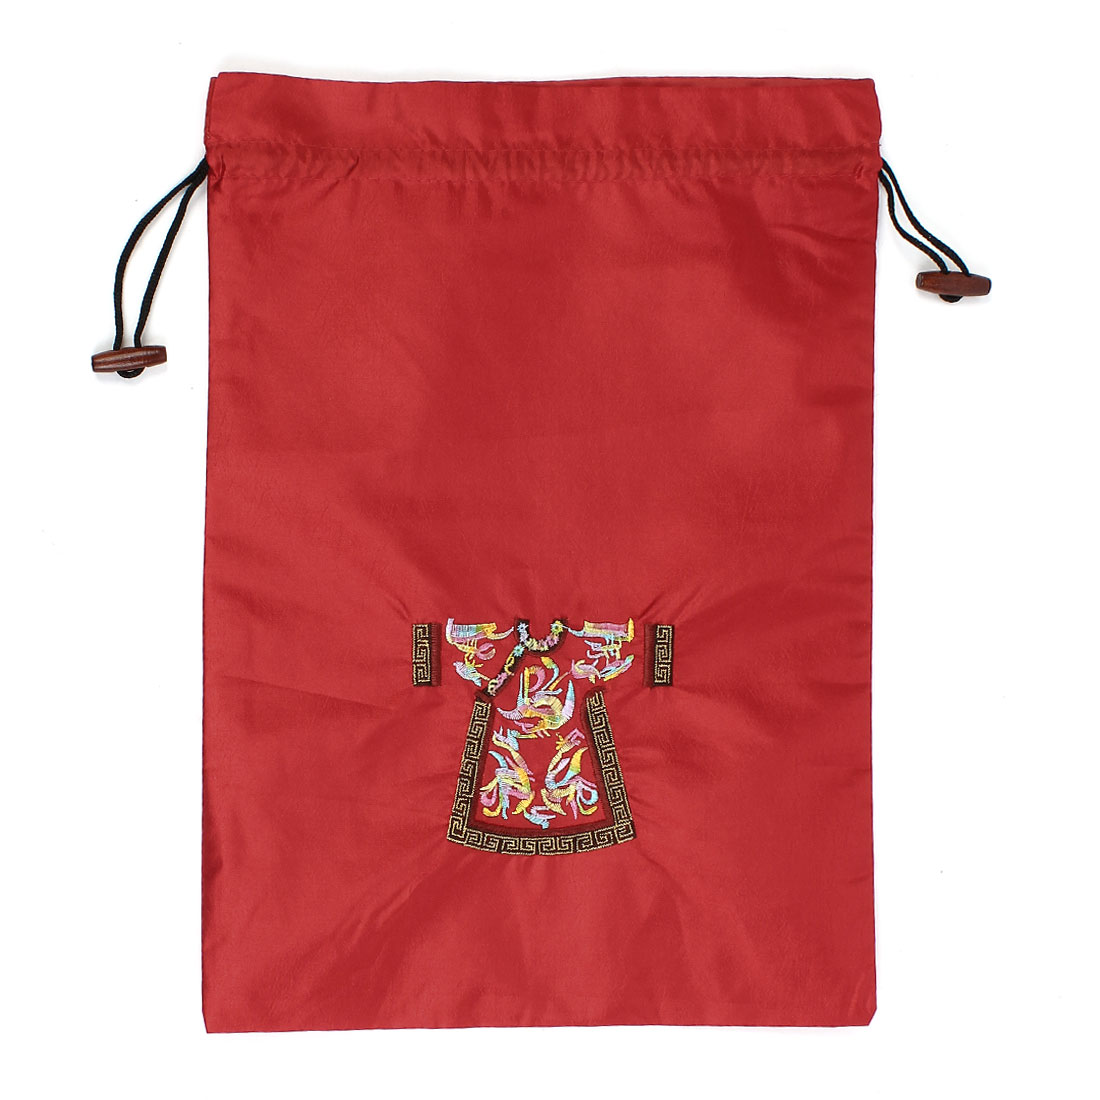 Rectangle Shape Embroidery Cloth Pattern Drawstring Gift Pouch Bag Red